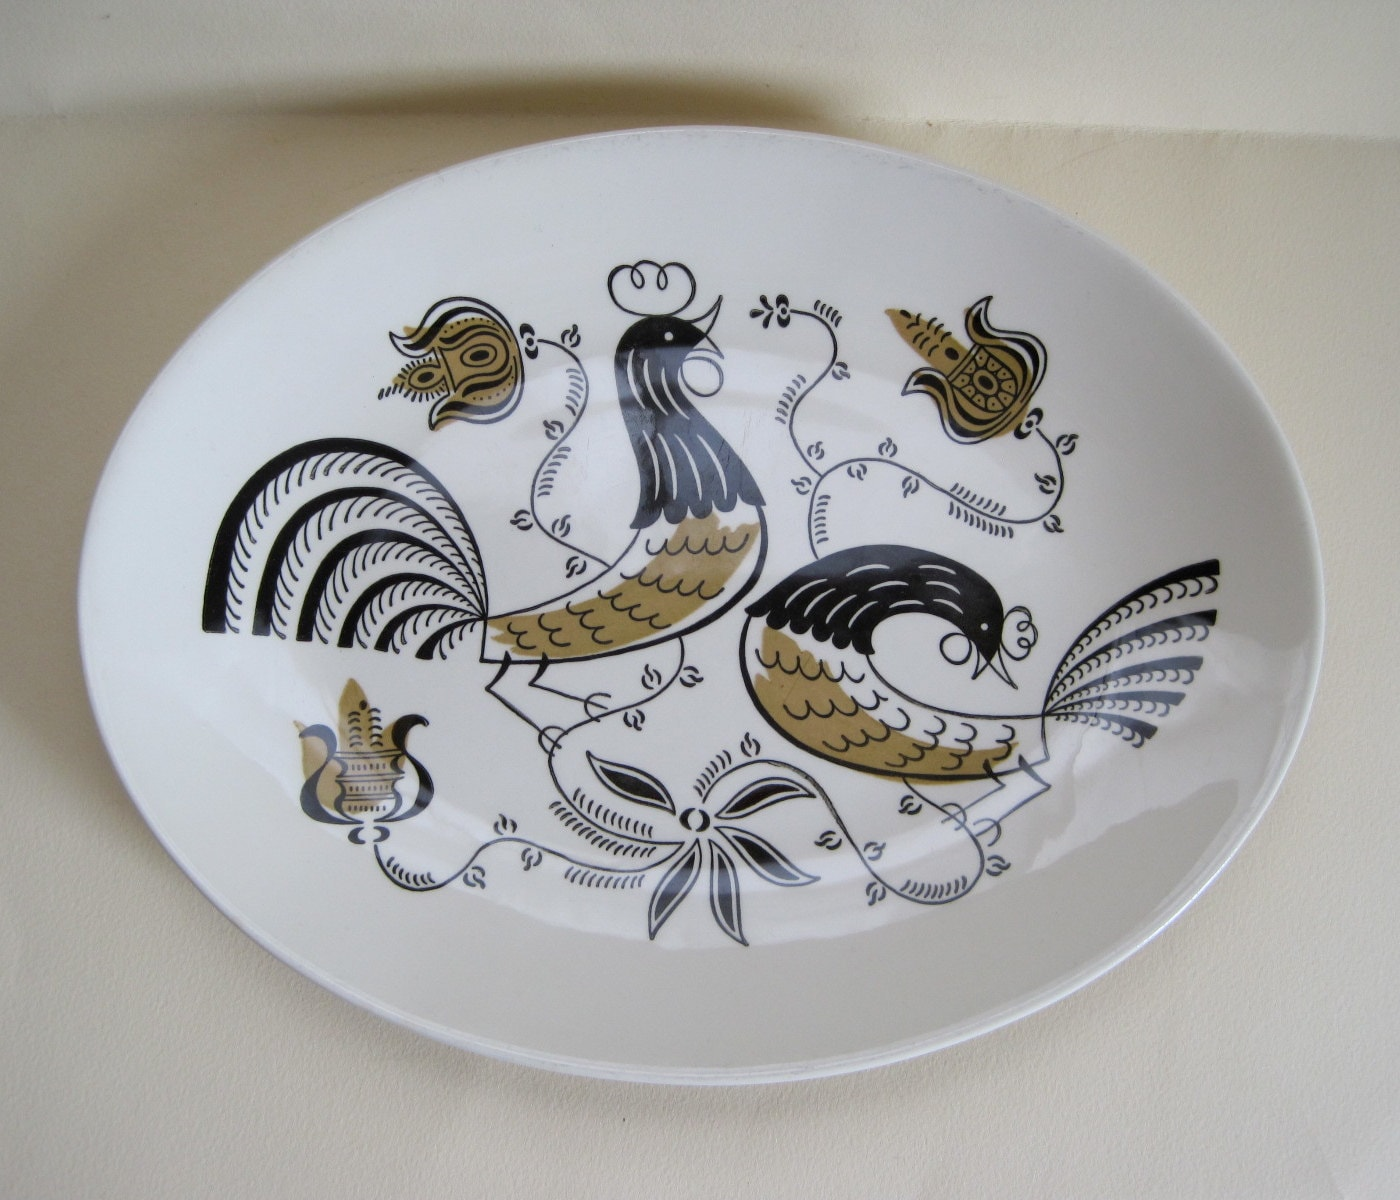 Good Morning Too In Chinese : Royal china good morning serving platter